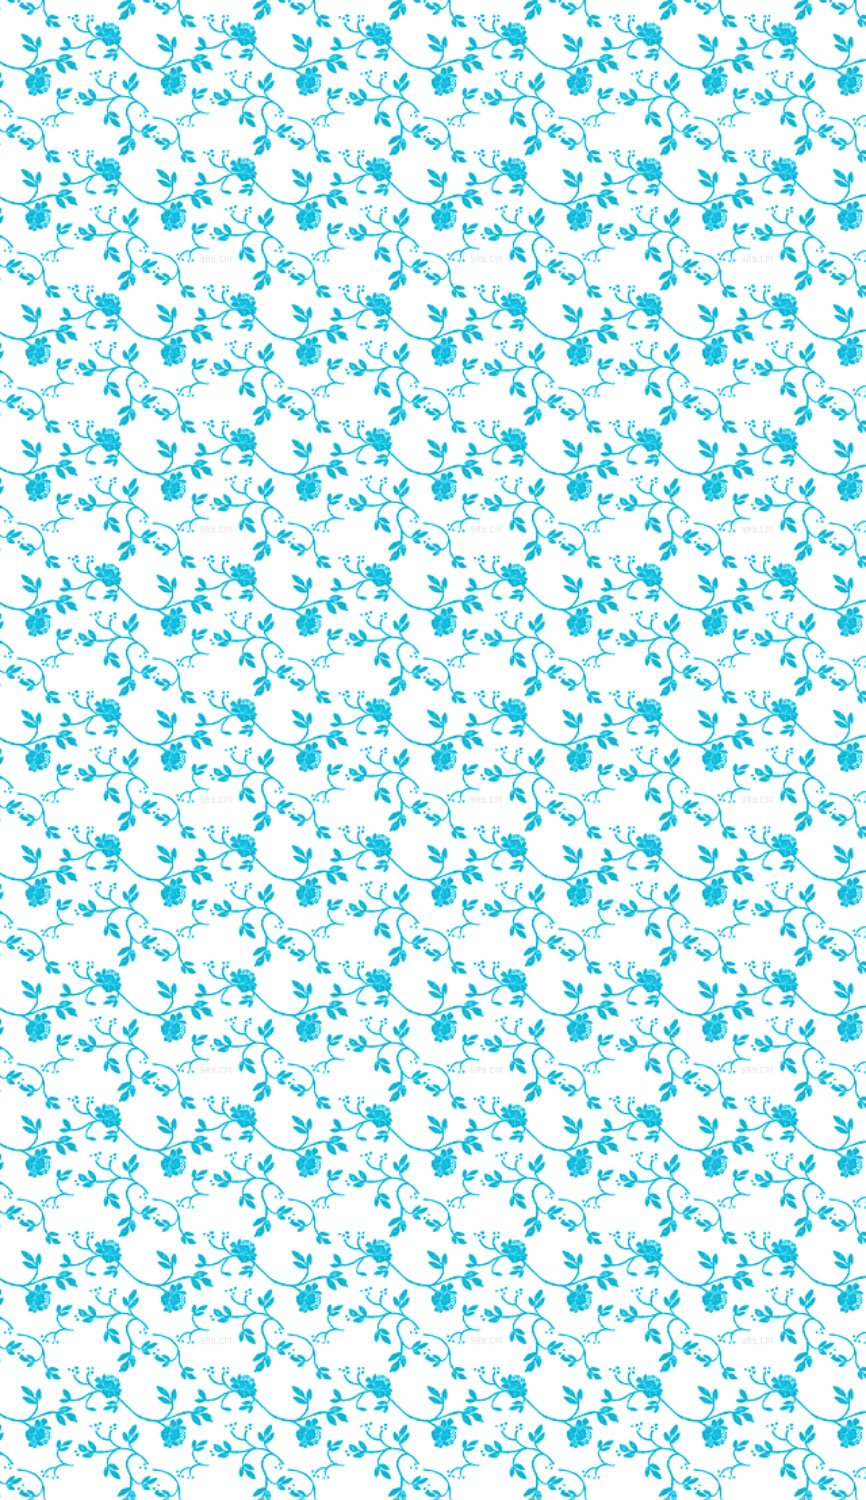 Blue And White Floral Wallpaper Patterns Backgrounds Wallpaper